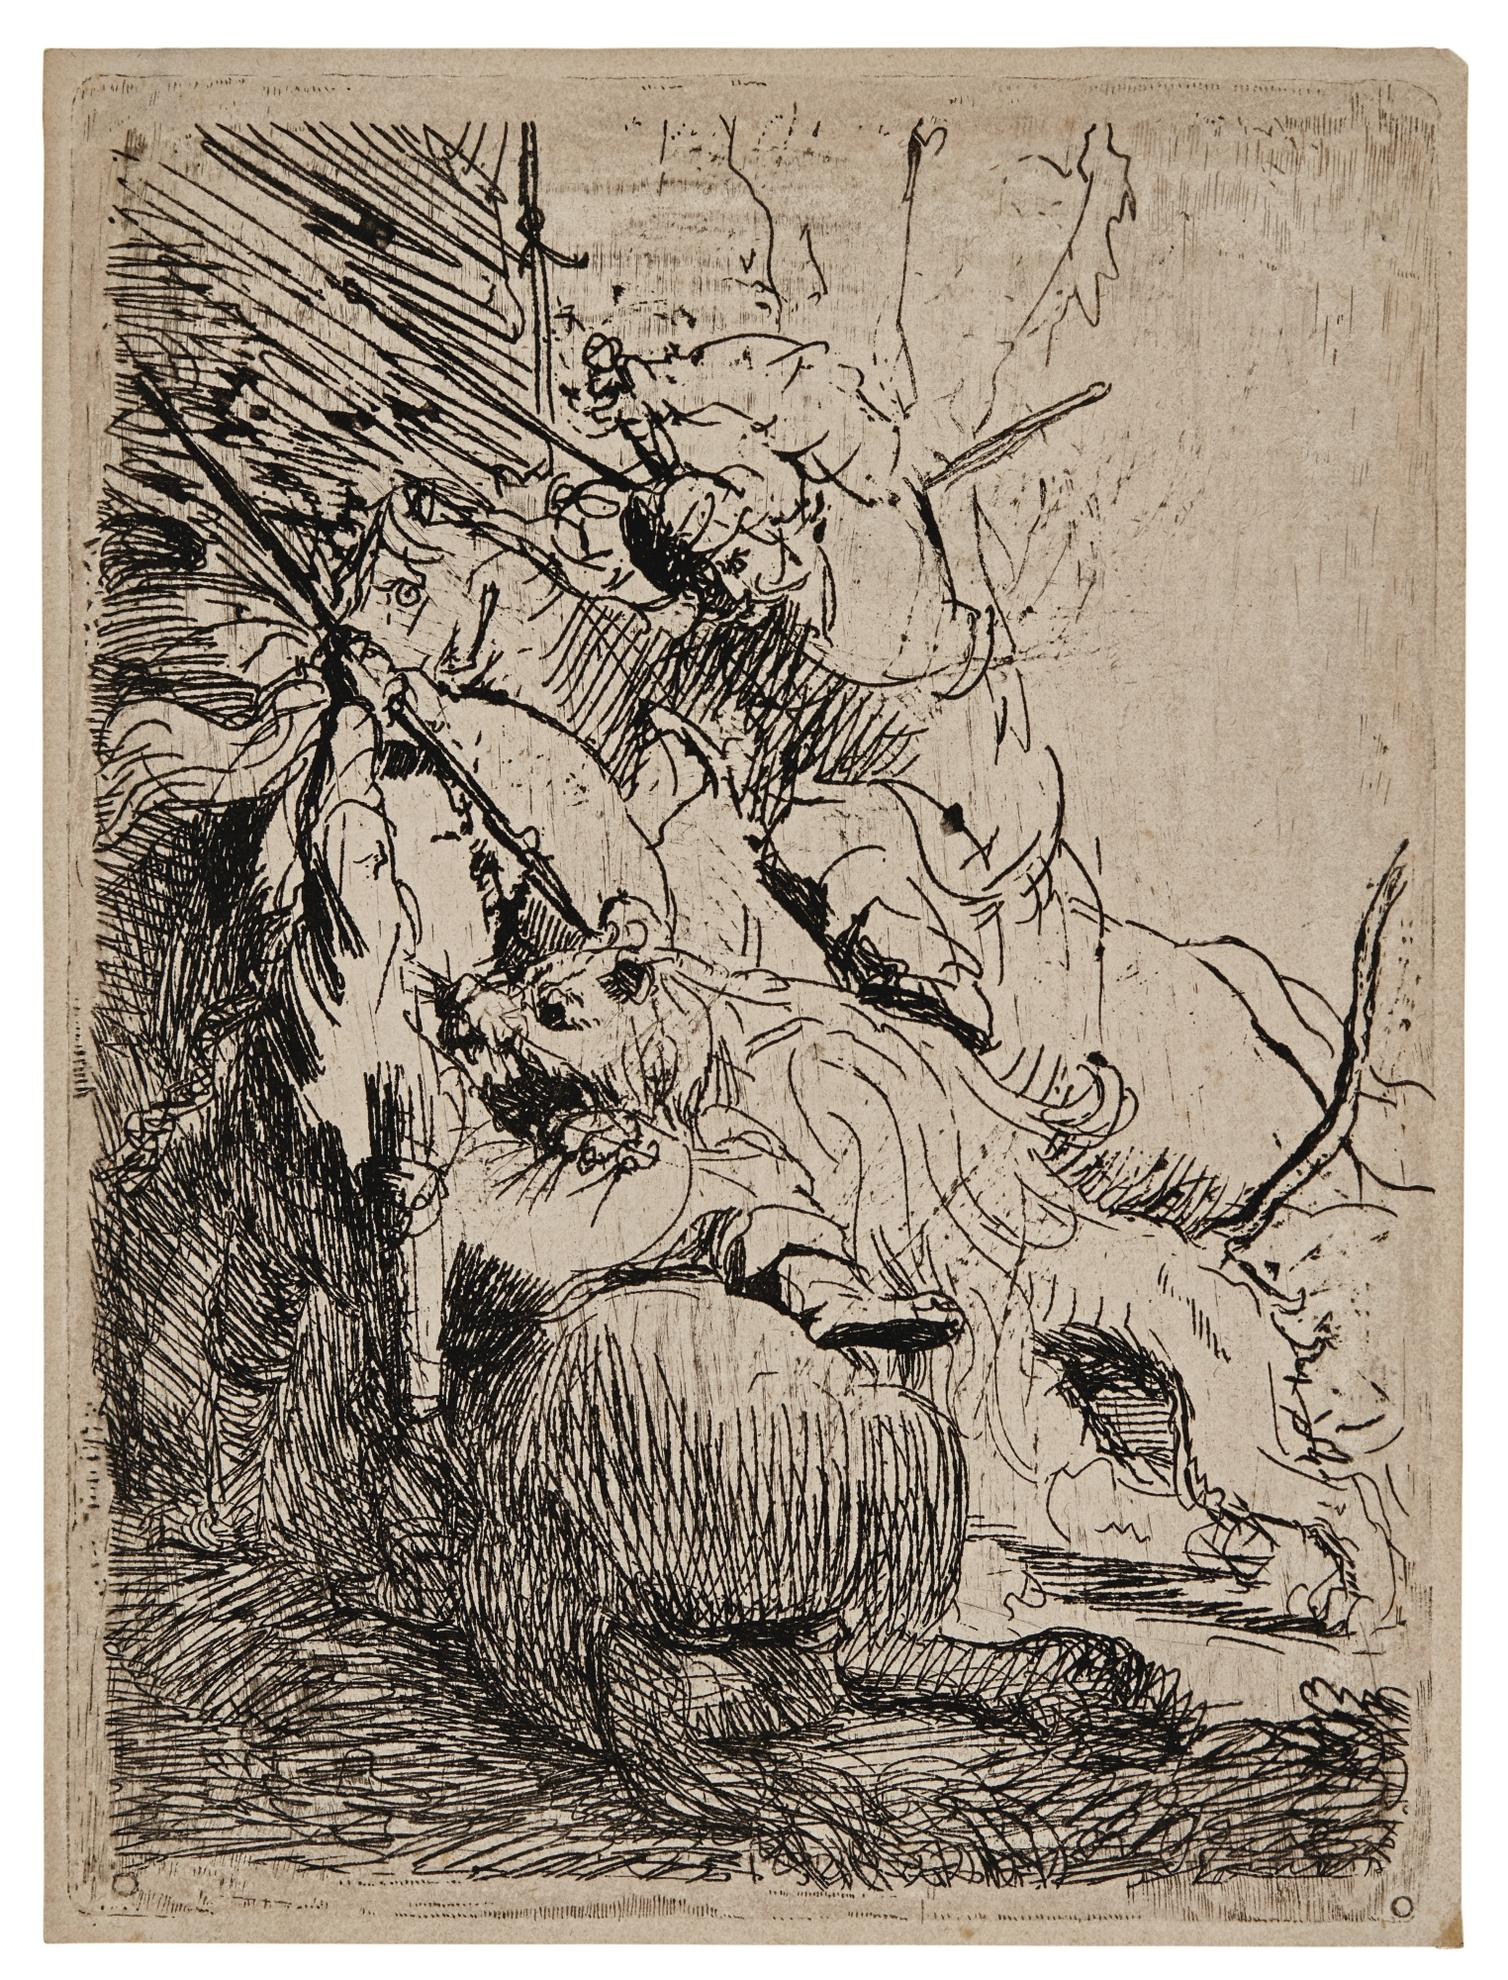 Rembrandt van Rijn-The Small Lion Hunt (With One Lion) (B., Holl. 116; New Holl. 29; H. 6)-1629